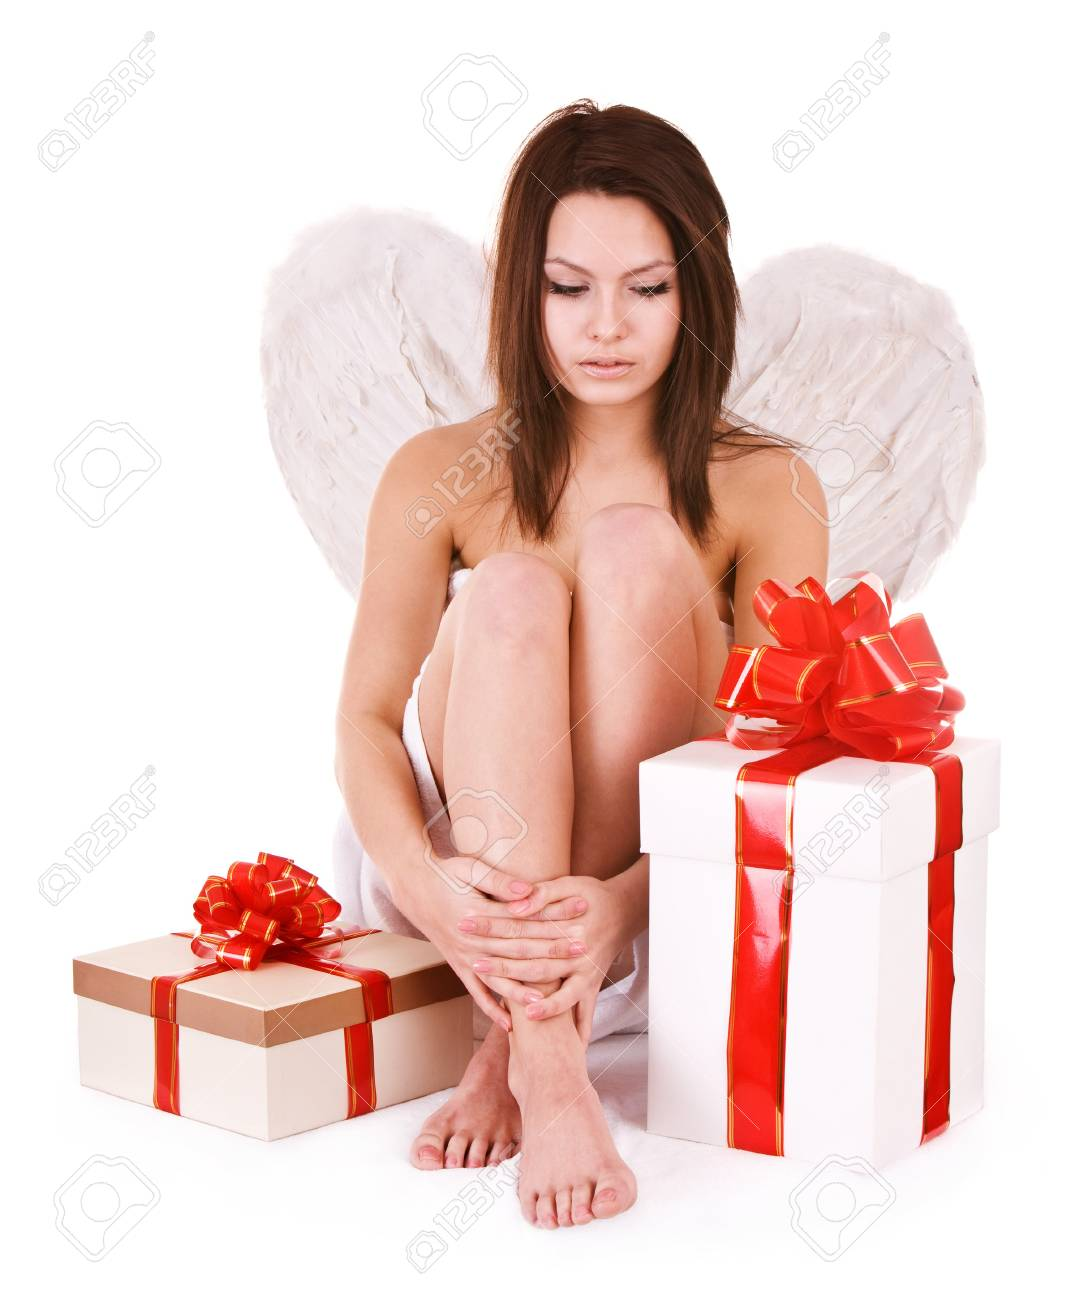 Angel girl with gift box. Isolated. Stock Photo - 7777749